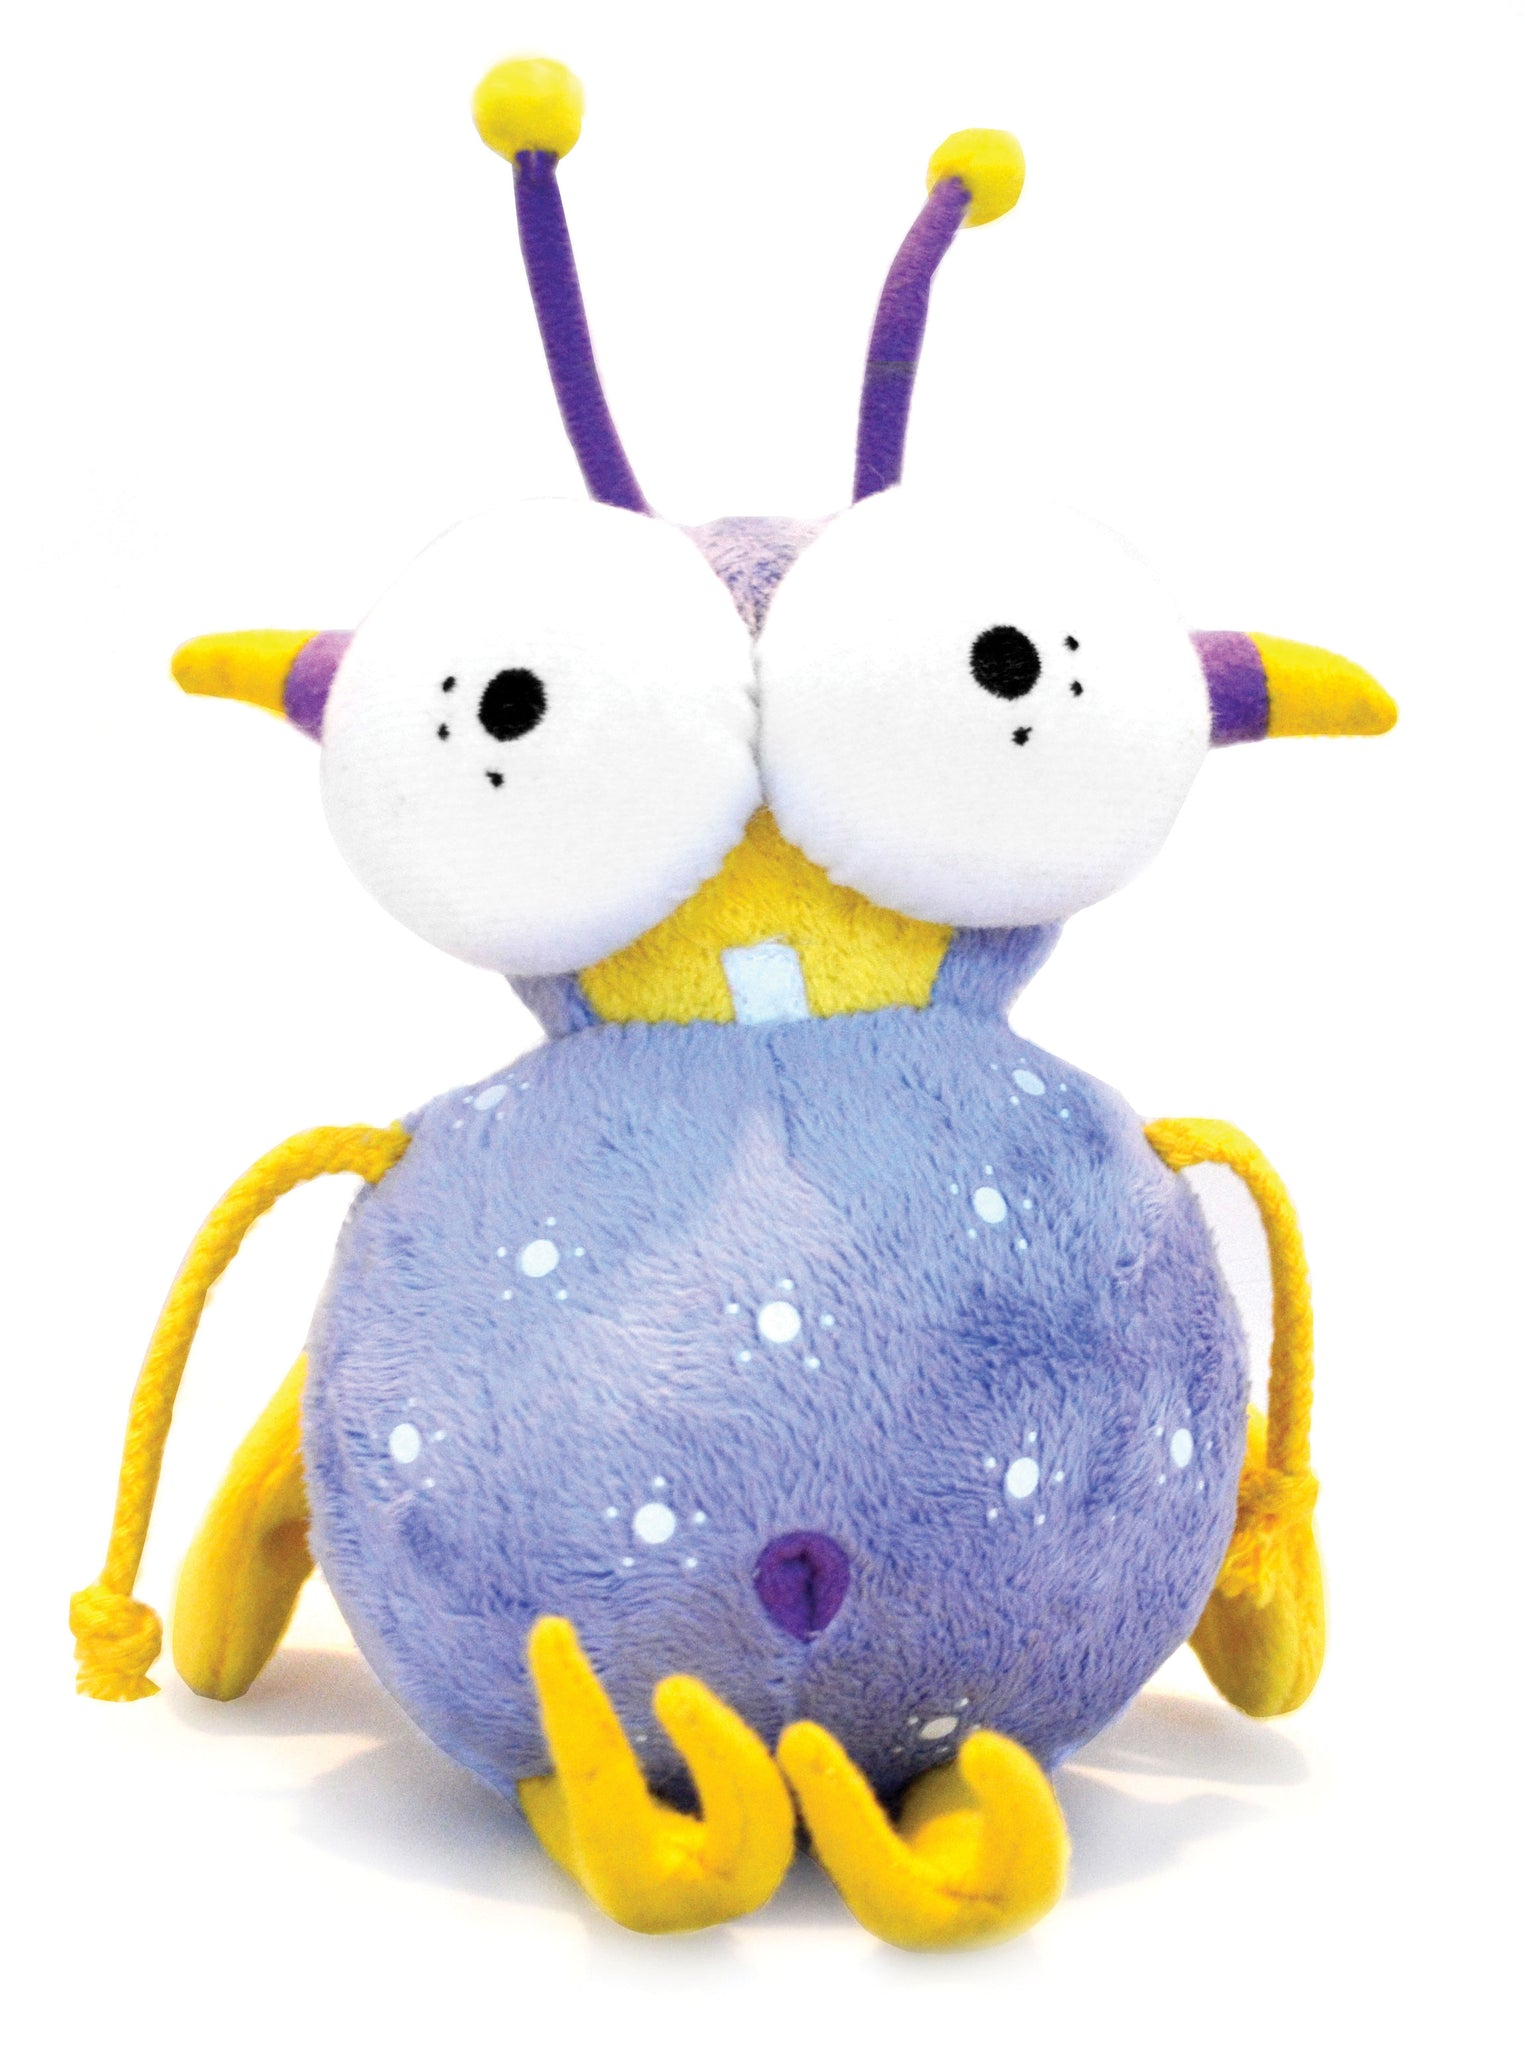 The WorryBug - WorryWoo Plush Toy - Children's Books and Toys - Spiffy